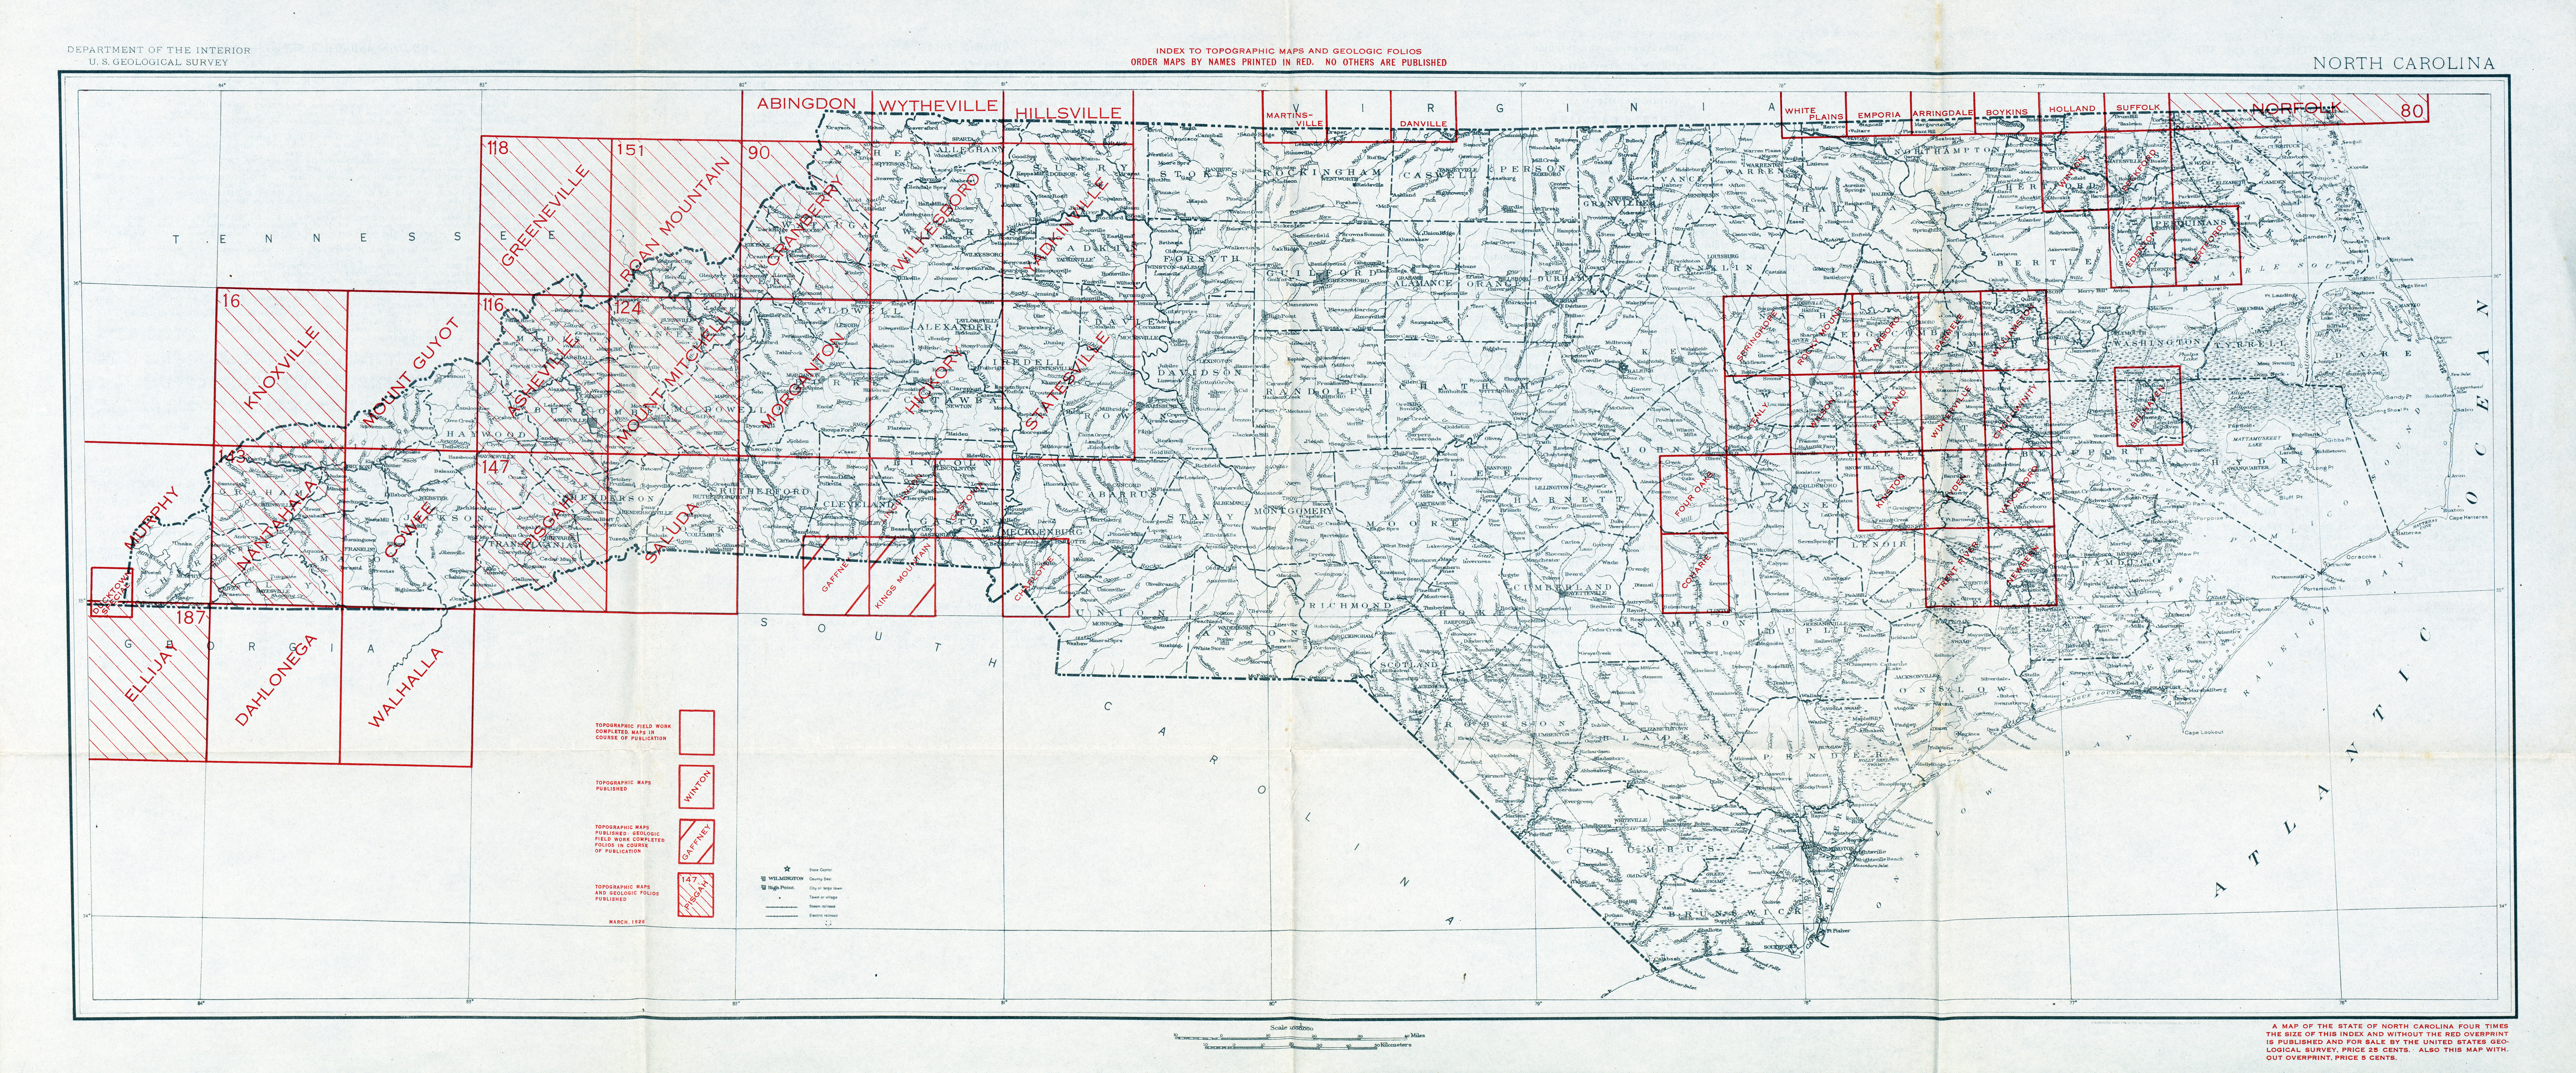 North Carolina Historical Topographic Maps   Perry Castañeda Map